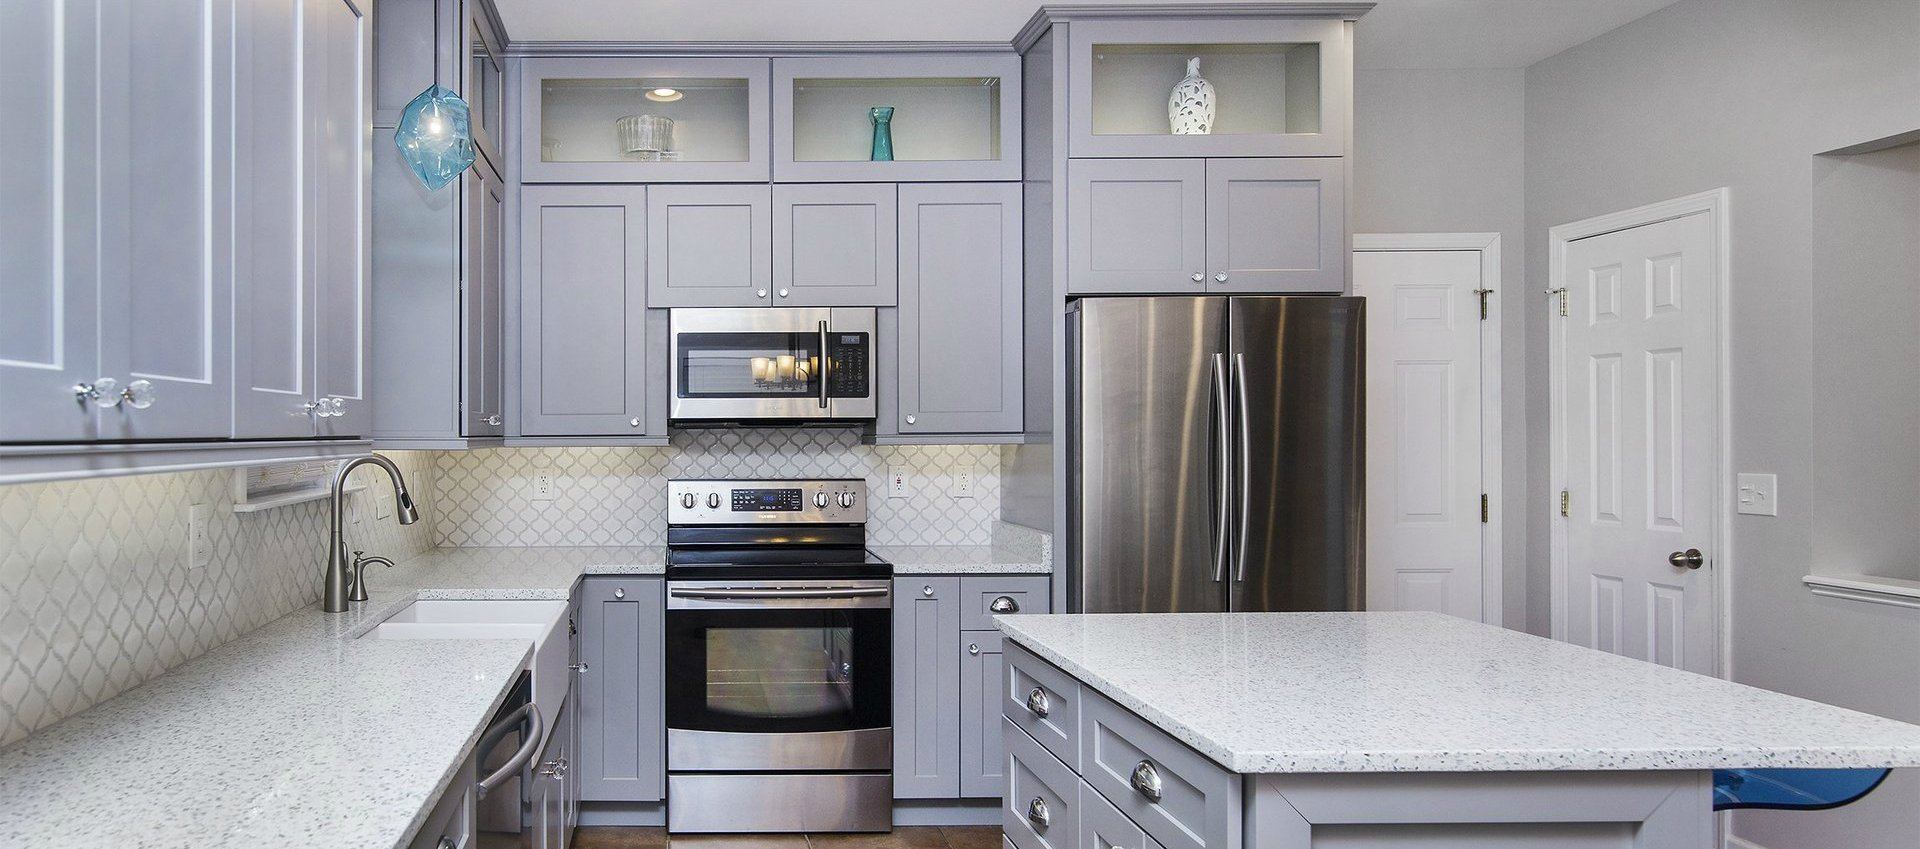 Kitchen Cabinets Manufacturers Cheap Wholesale Cabinet Supplier Wilmington Charlotte